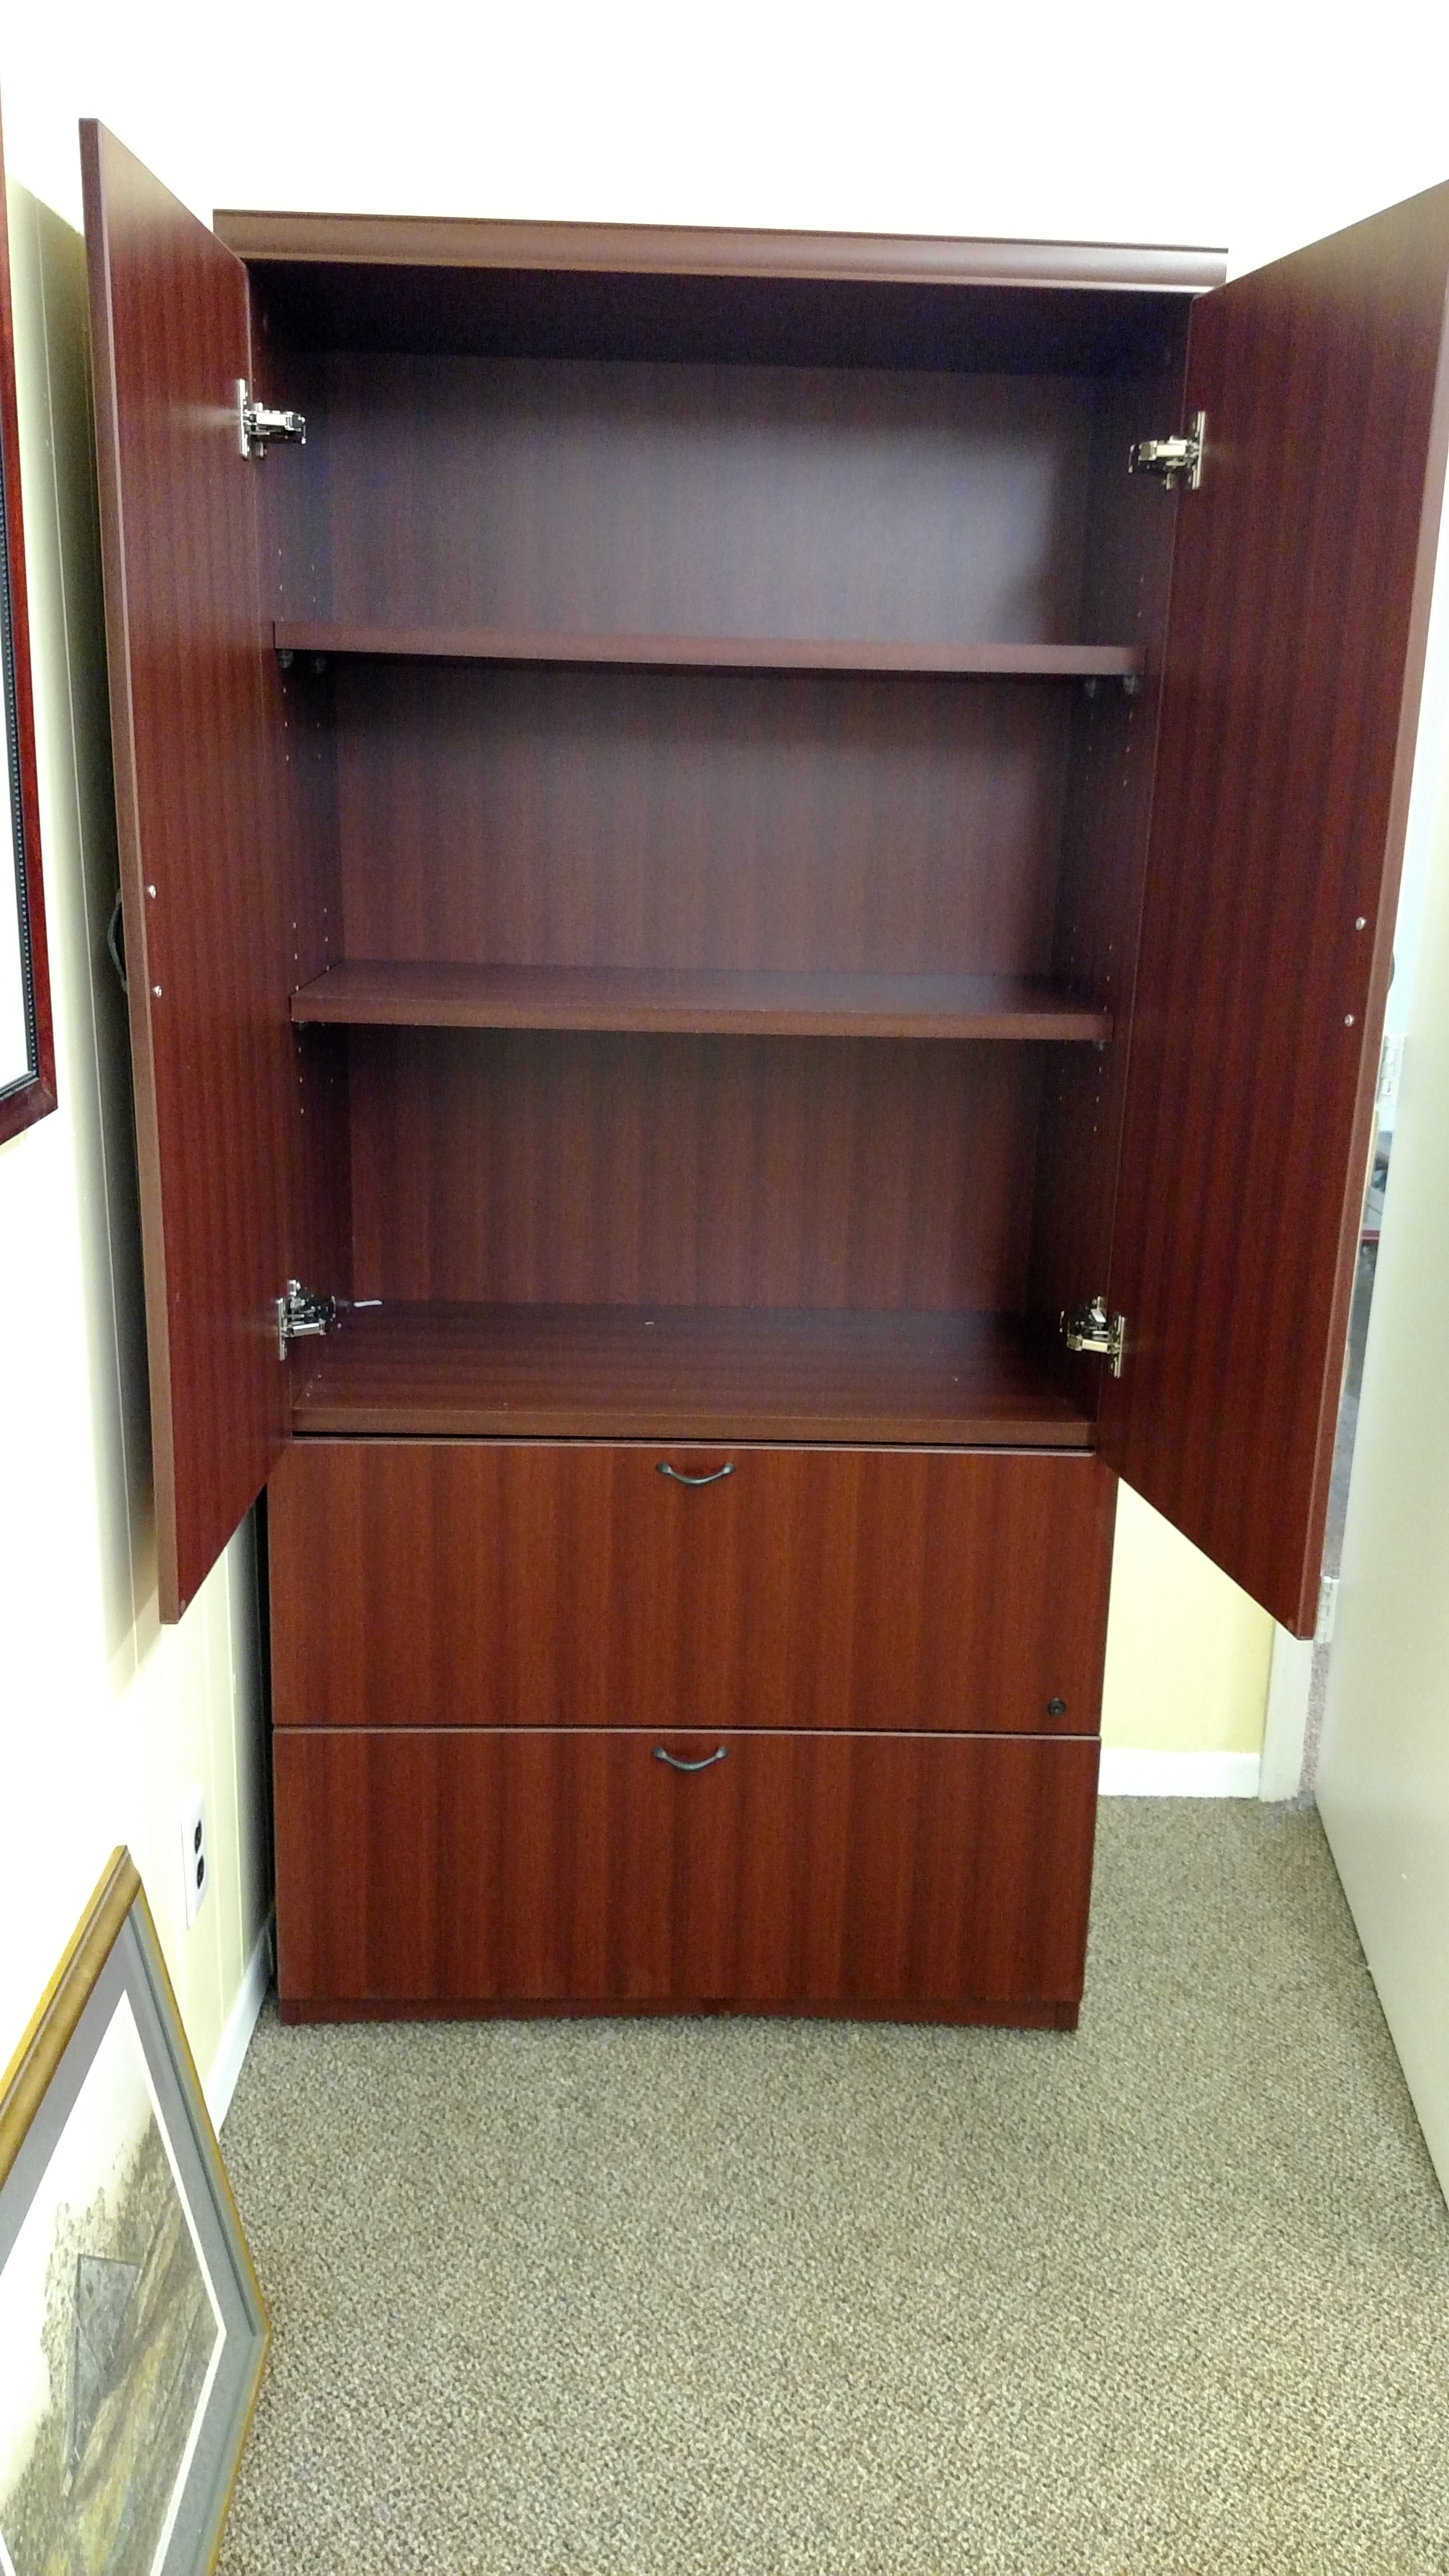 expedit for bookcase my sideboard a elegant of hack ikea bookshelf bar enclosed into bookcases first